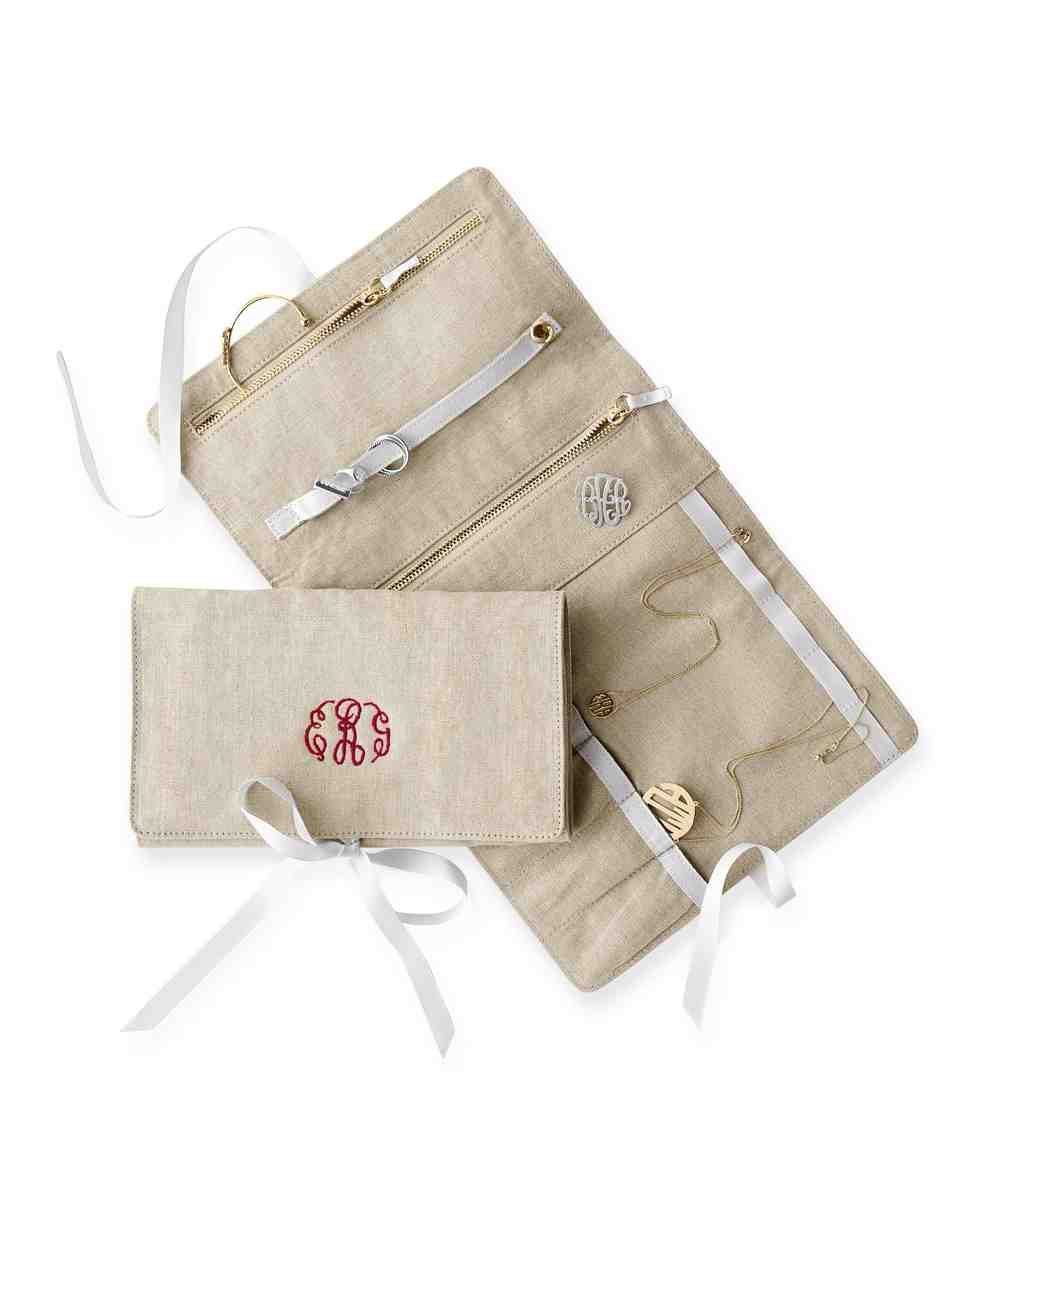 bridal-party-gifts-monogrammed-jewelry-travel-carrier-0416.jpg